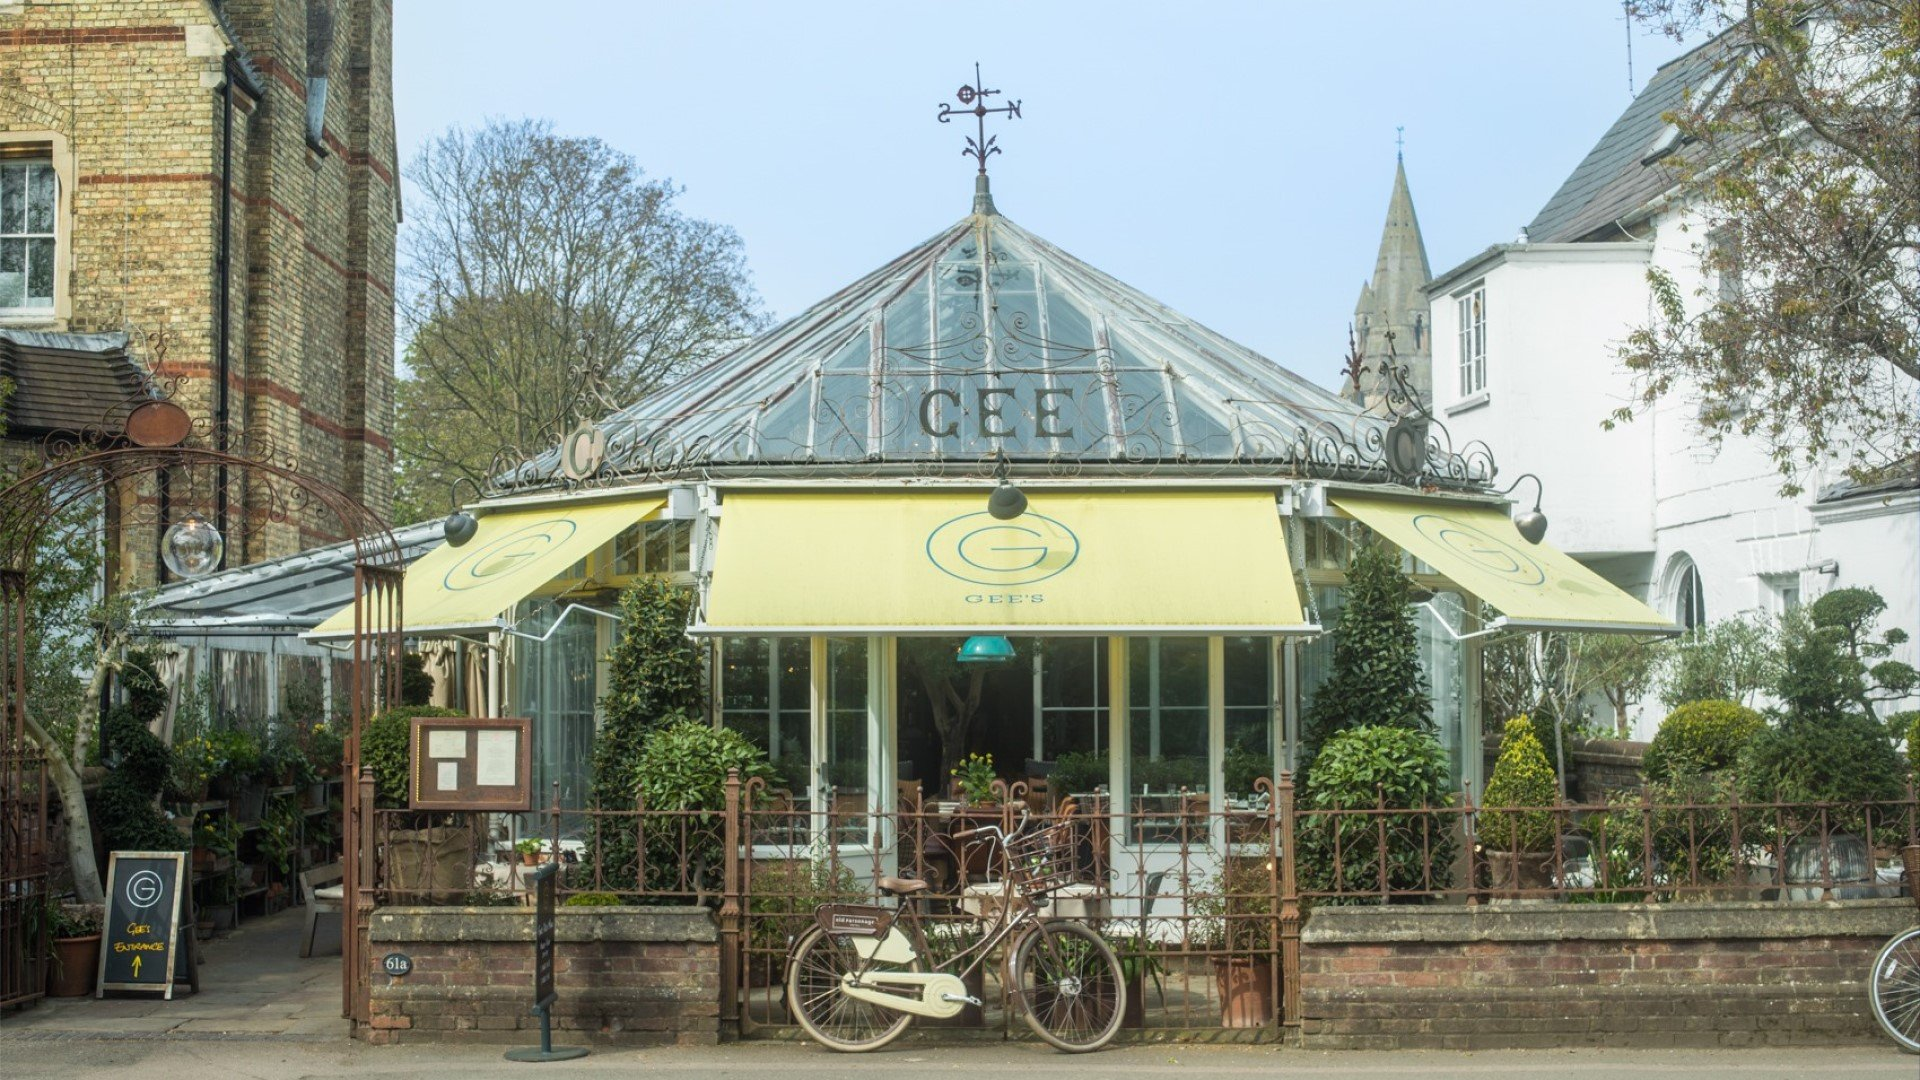 Gee's Restaurant & Bar, Banbury Road, Oxford